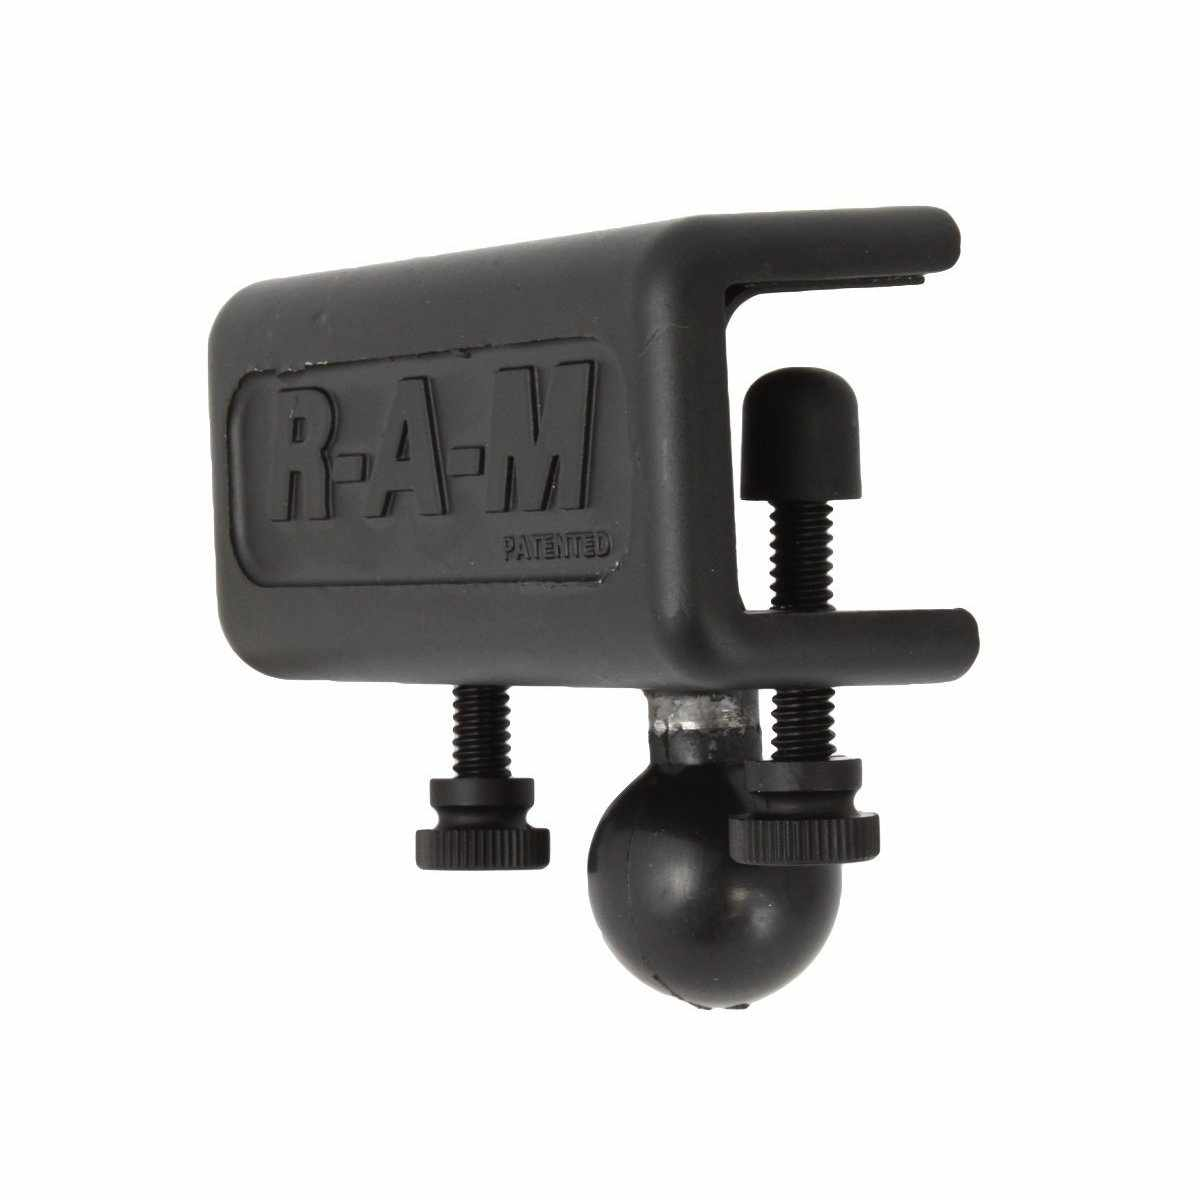 "RAM Glare Shield Clamp Base with 1"" Ball (RAM-B-259U)-Modest Mounts"